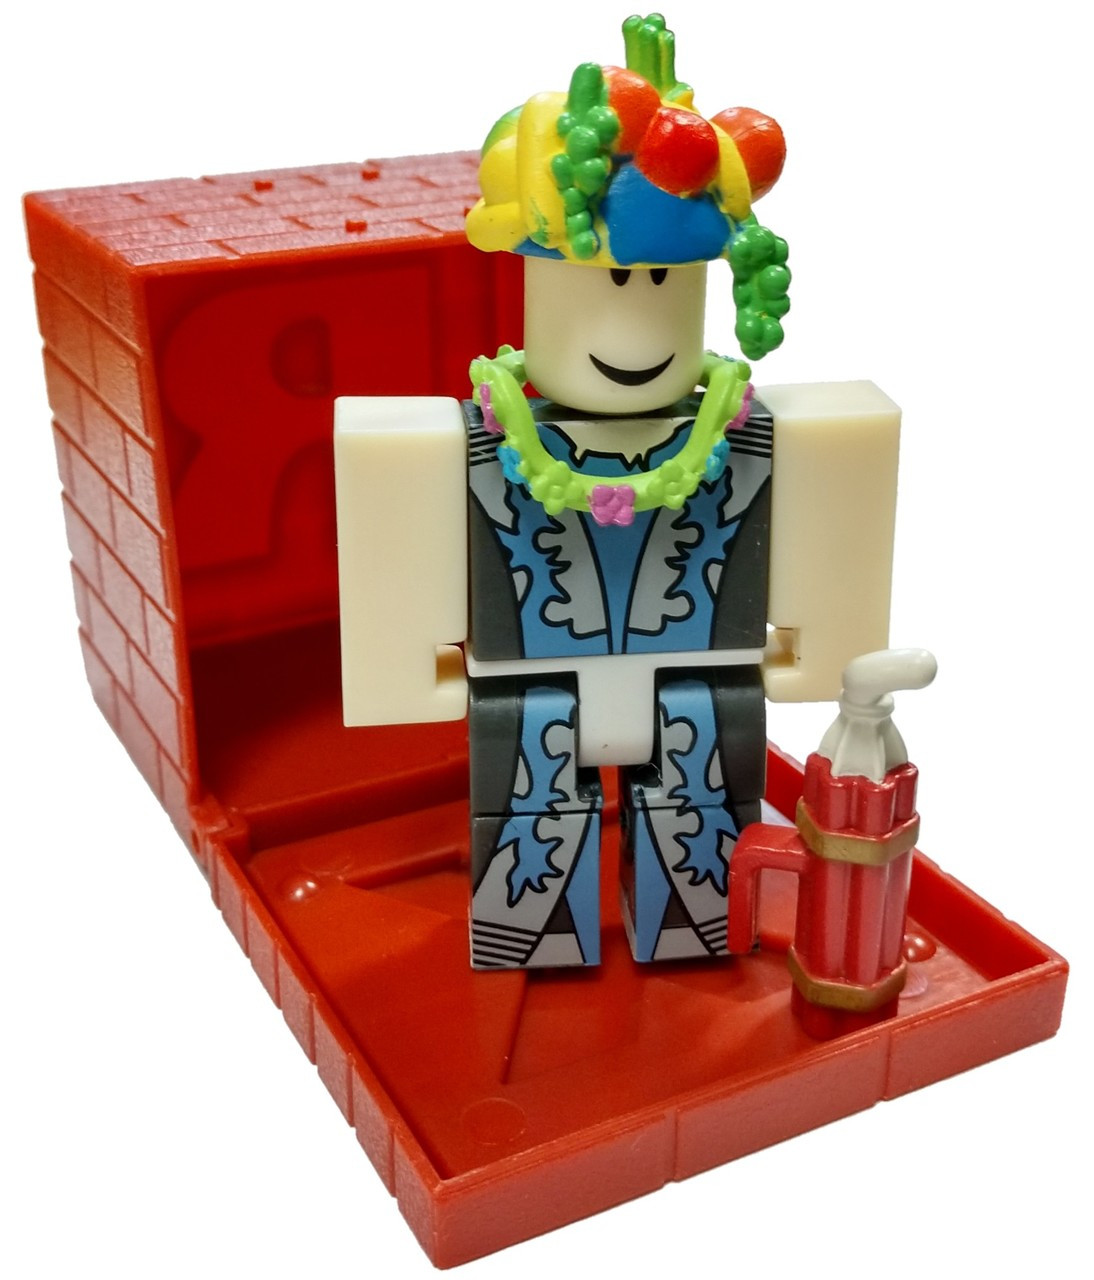 Roblox Red Series 4 Imaginaerum 3 Mini Figure With Red Cube And